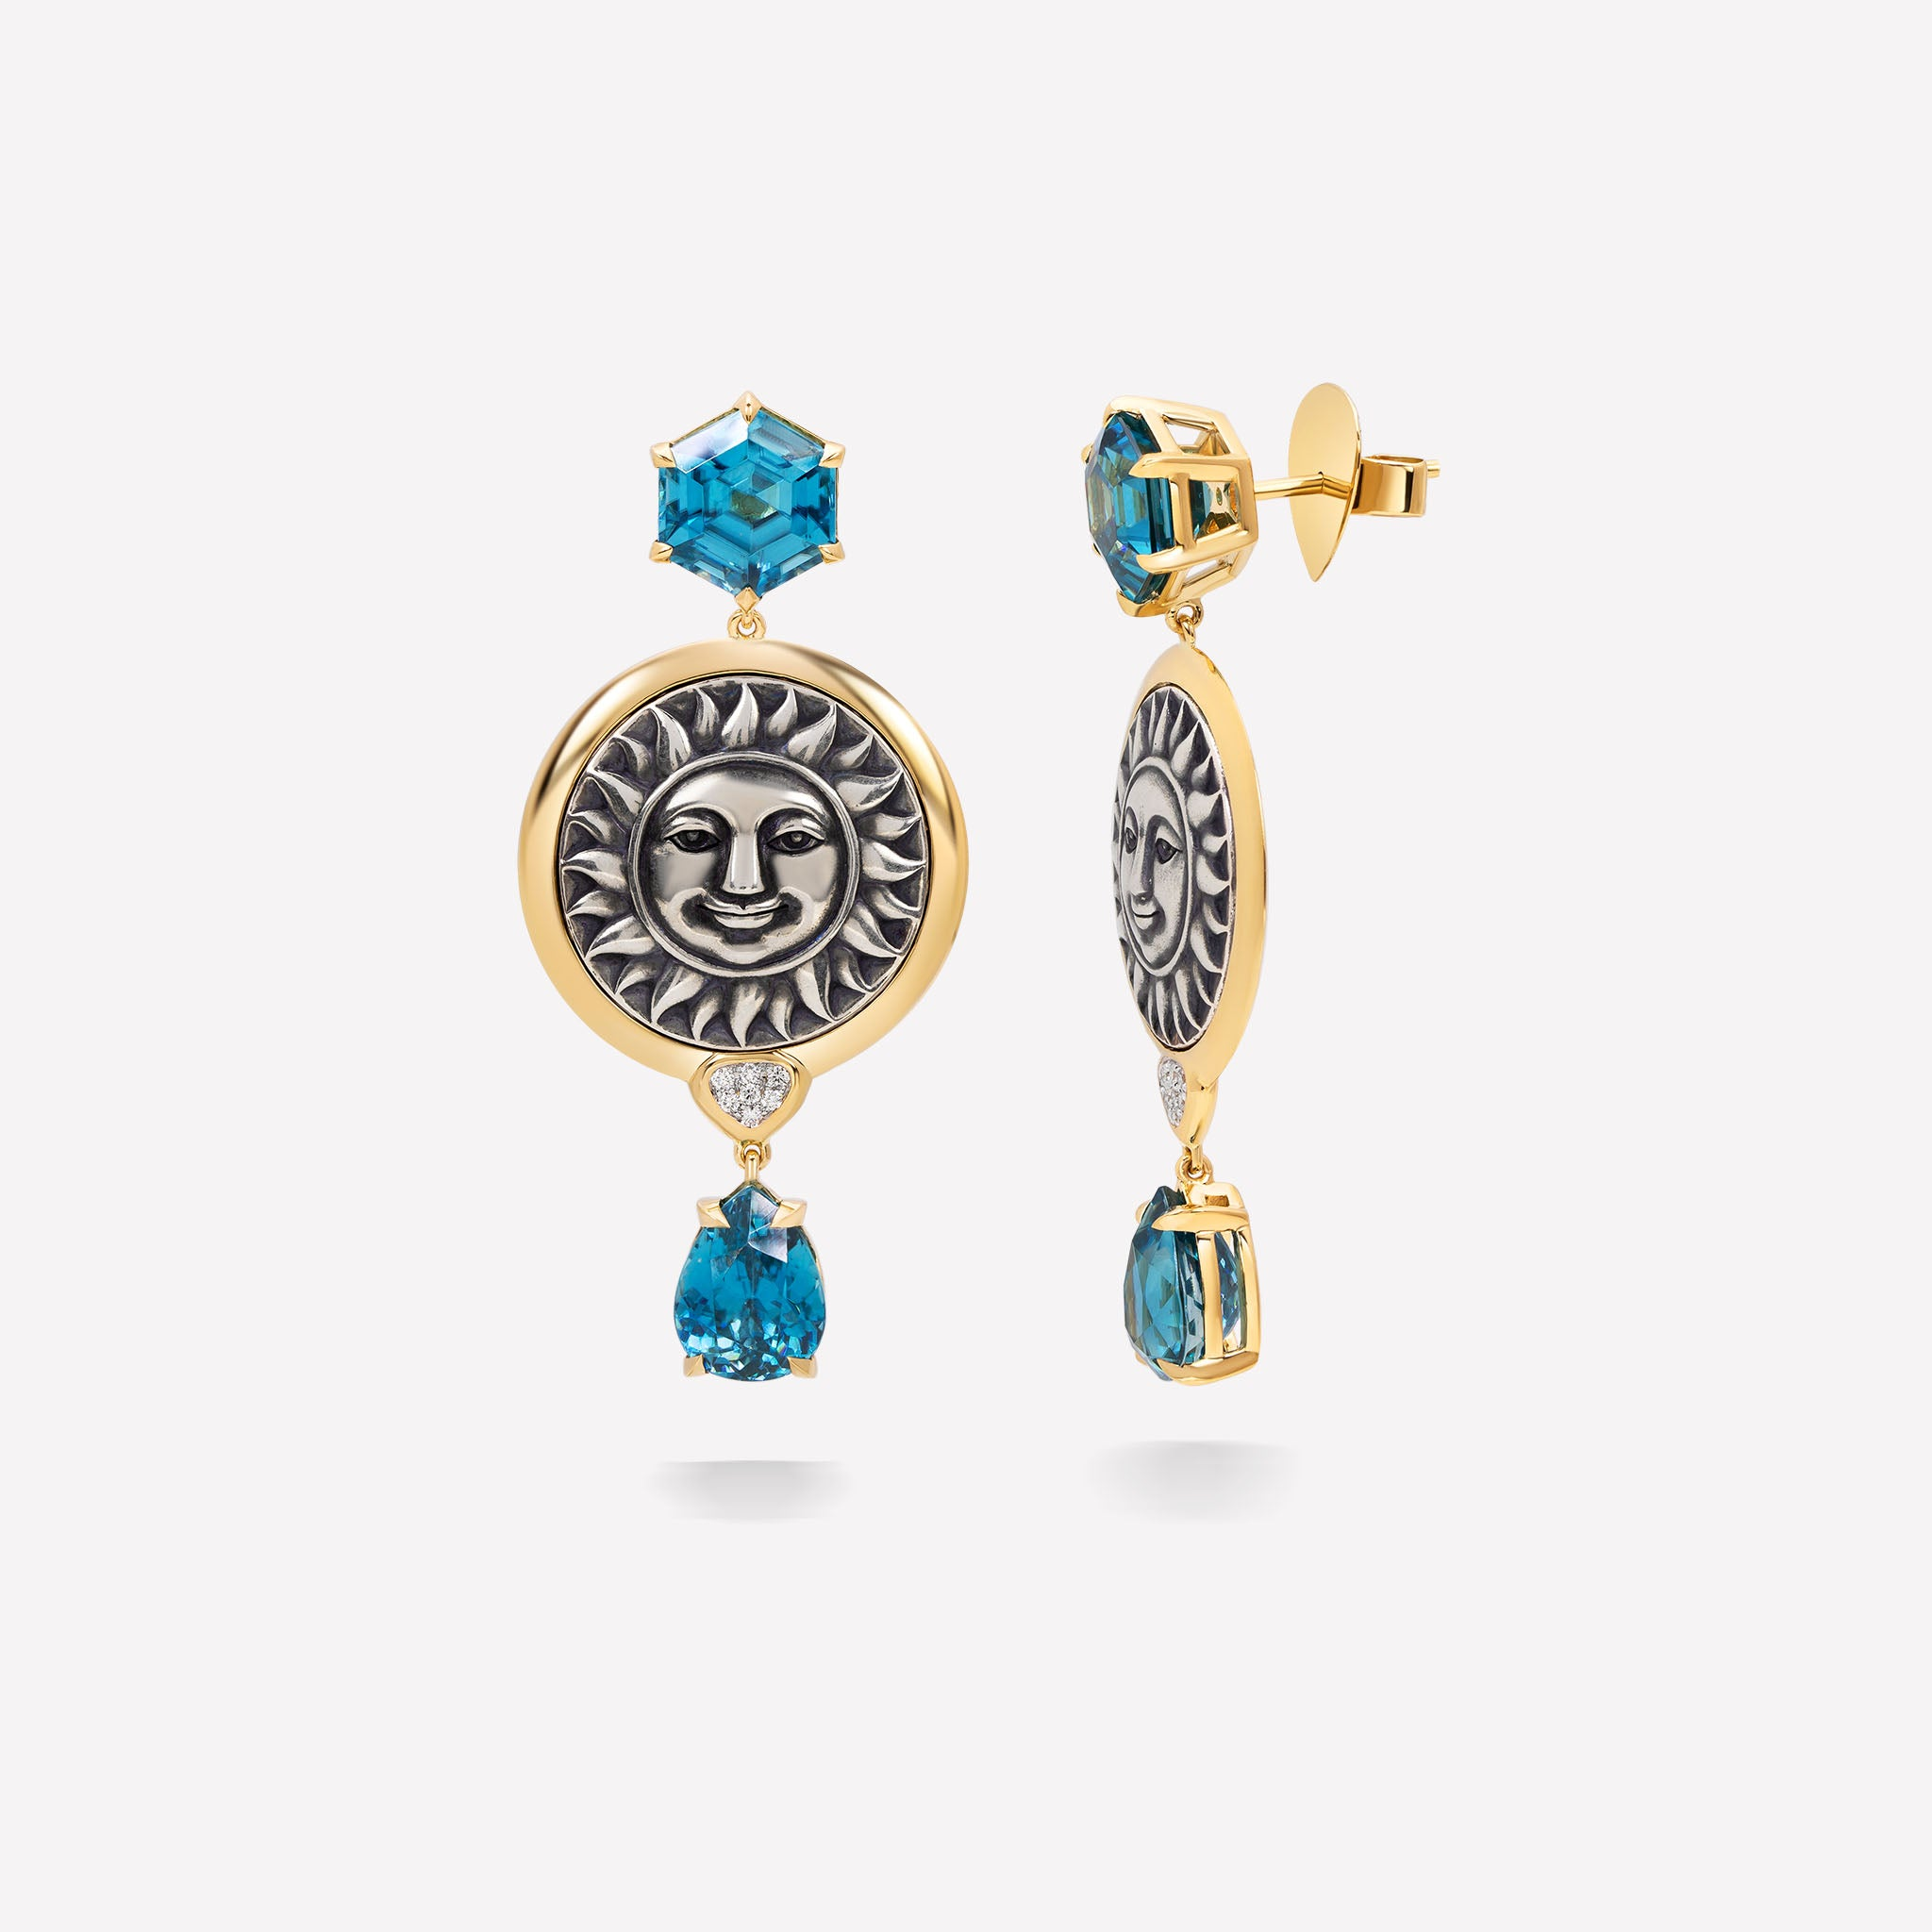 marinab.com, Soleil Limited Edition Soleil Hortia Earrings